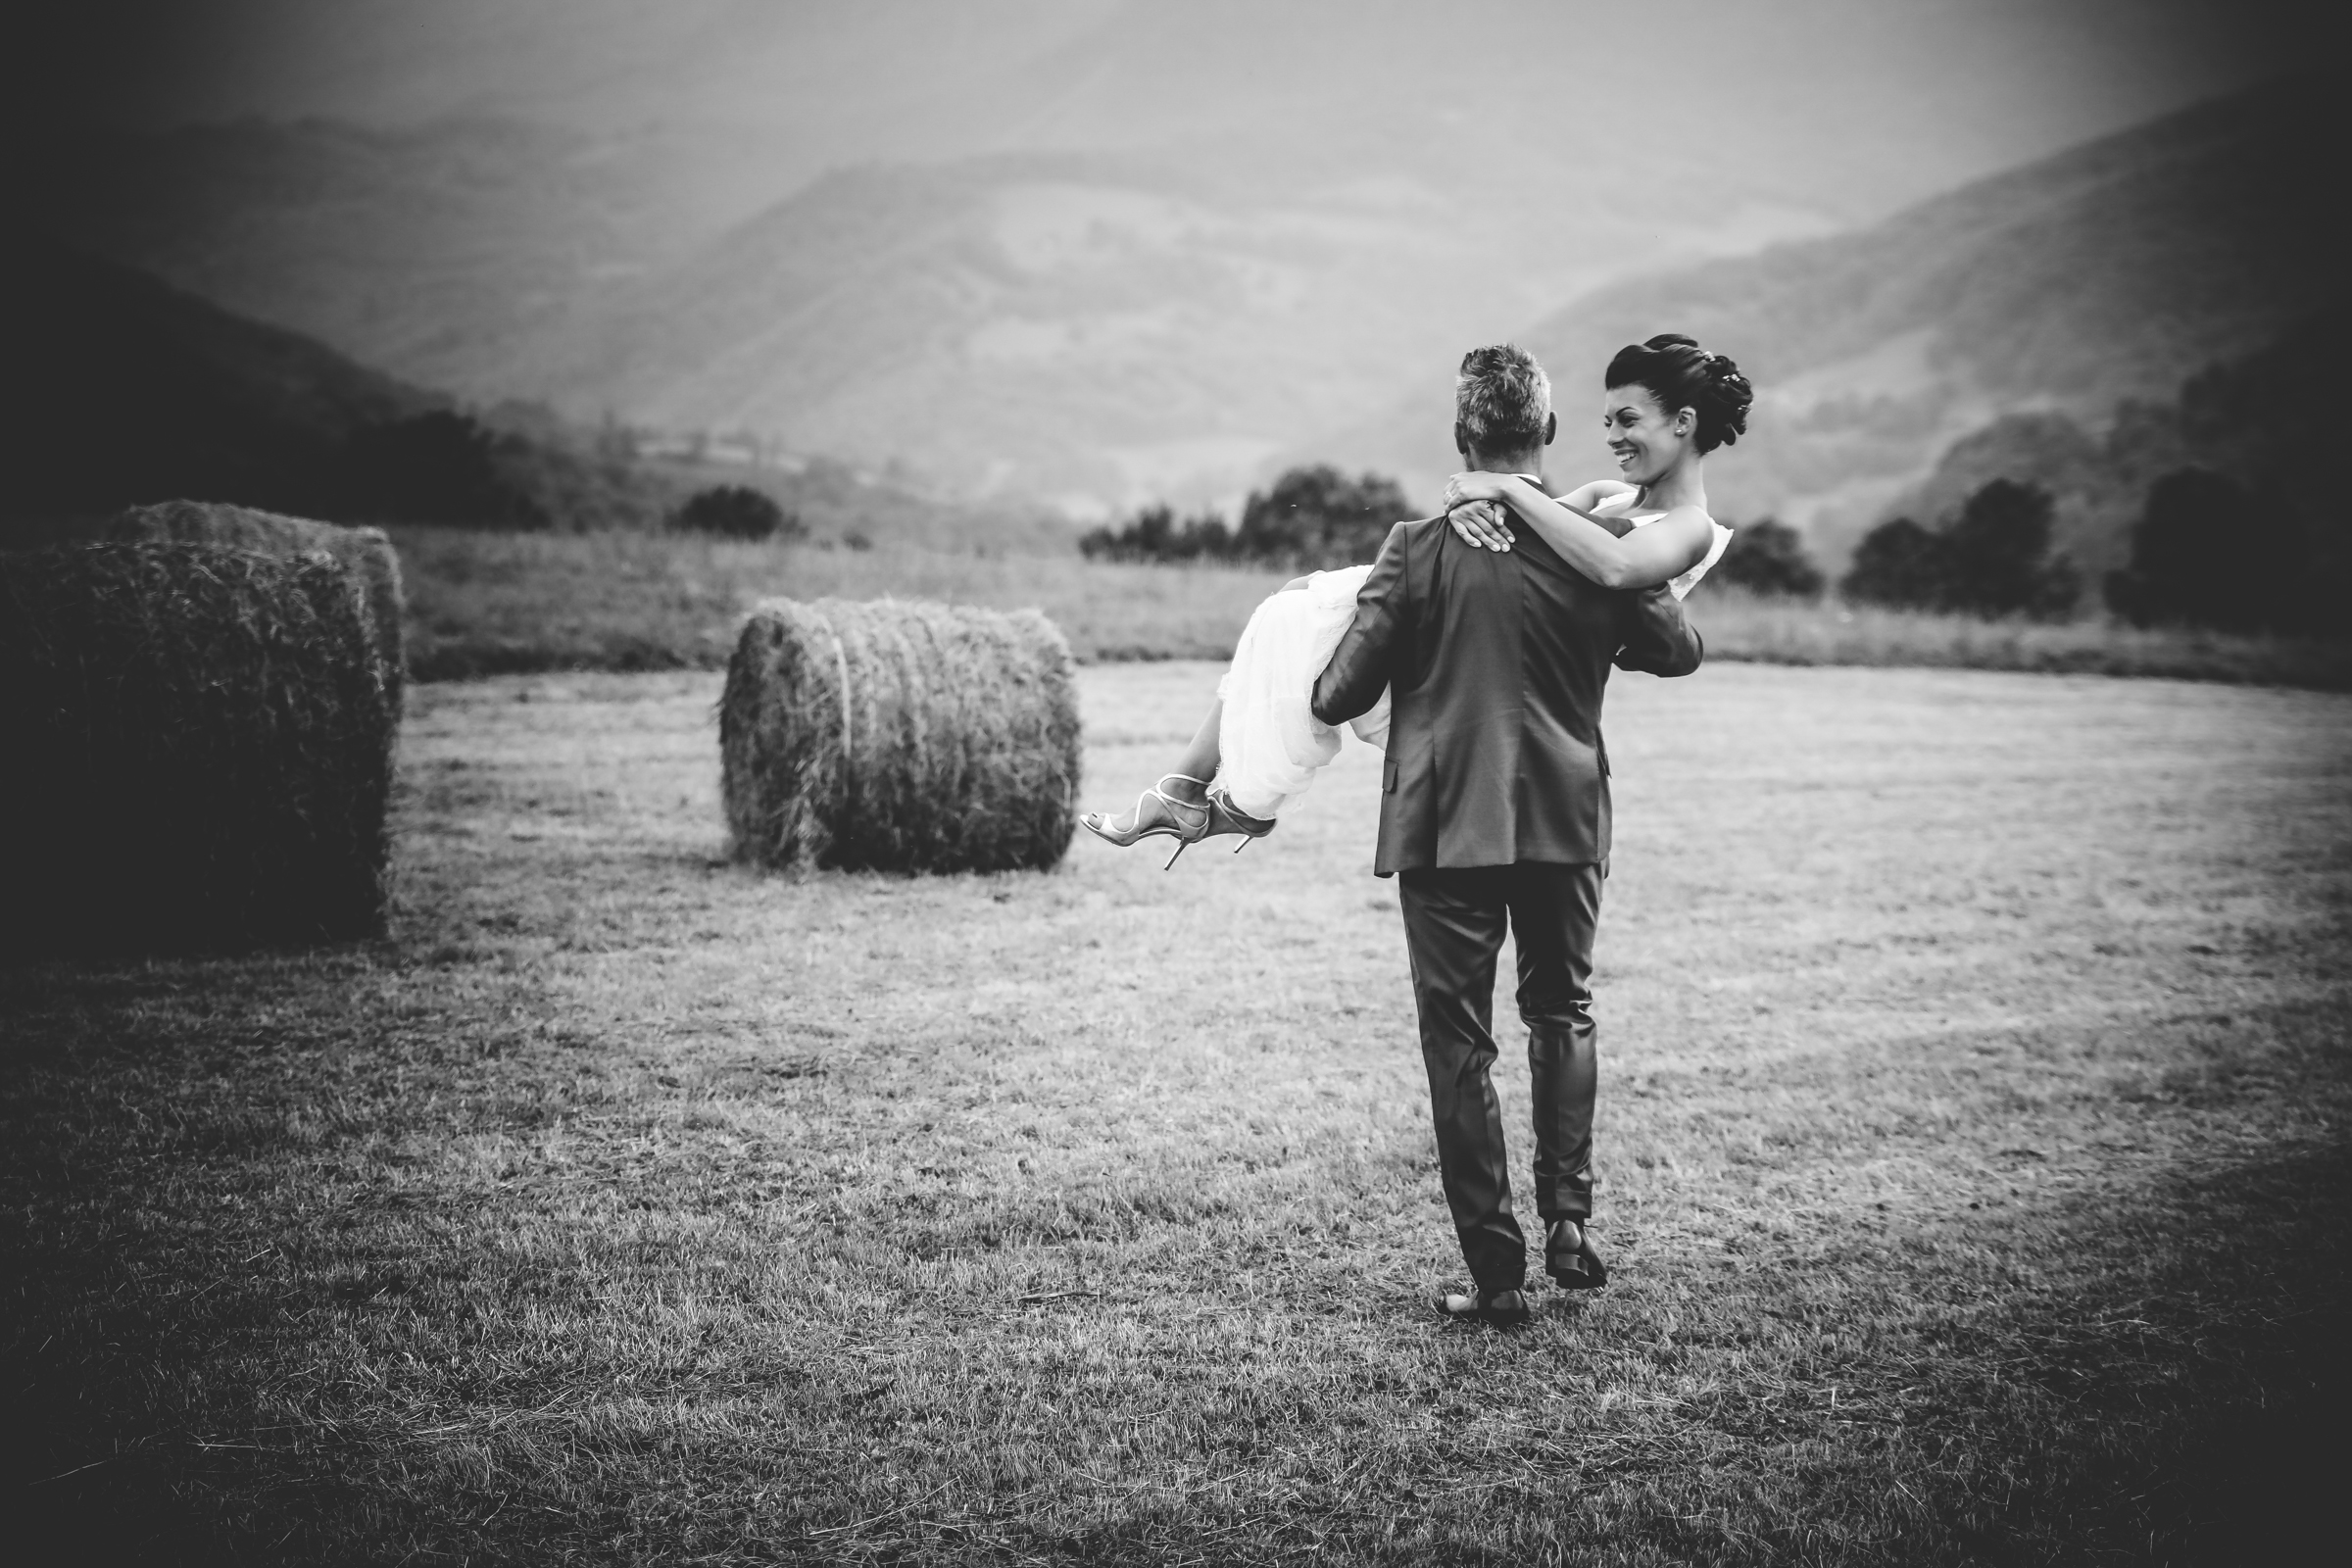 Groom carries bride over threshold to hay field - photo by Julien Laurent-Georges